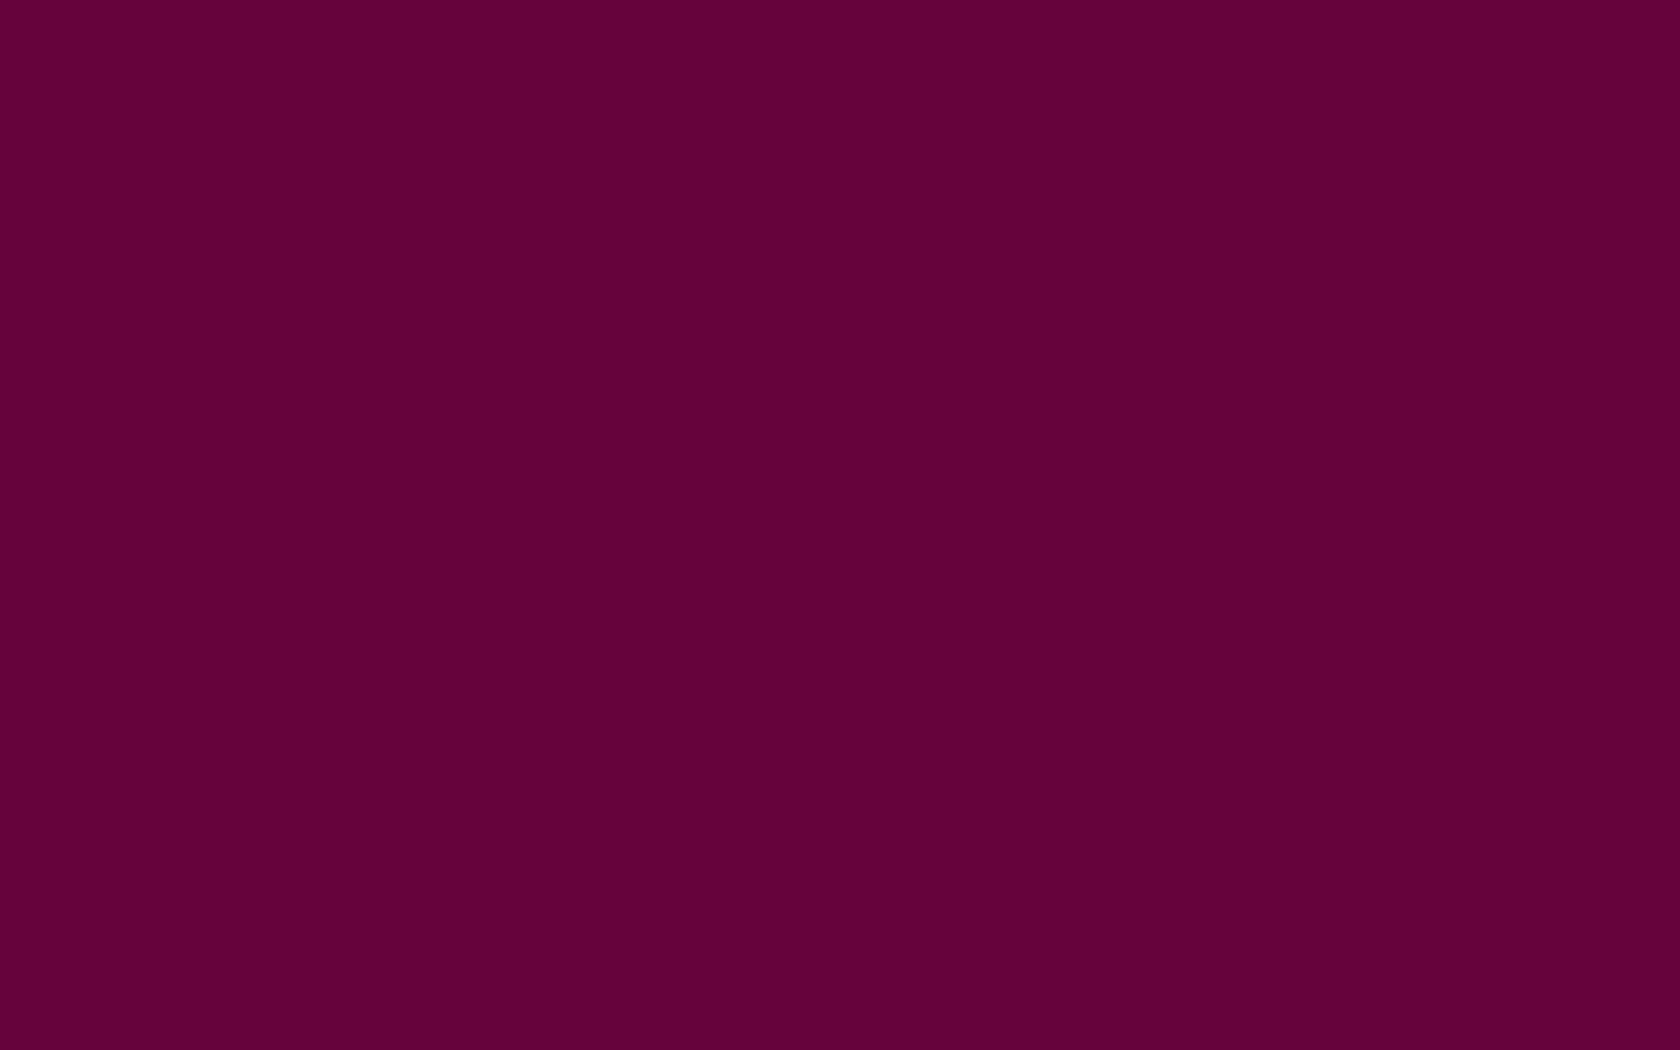 1680x1050 Tyrian Purple Solid Color Background